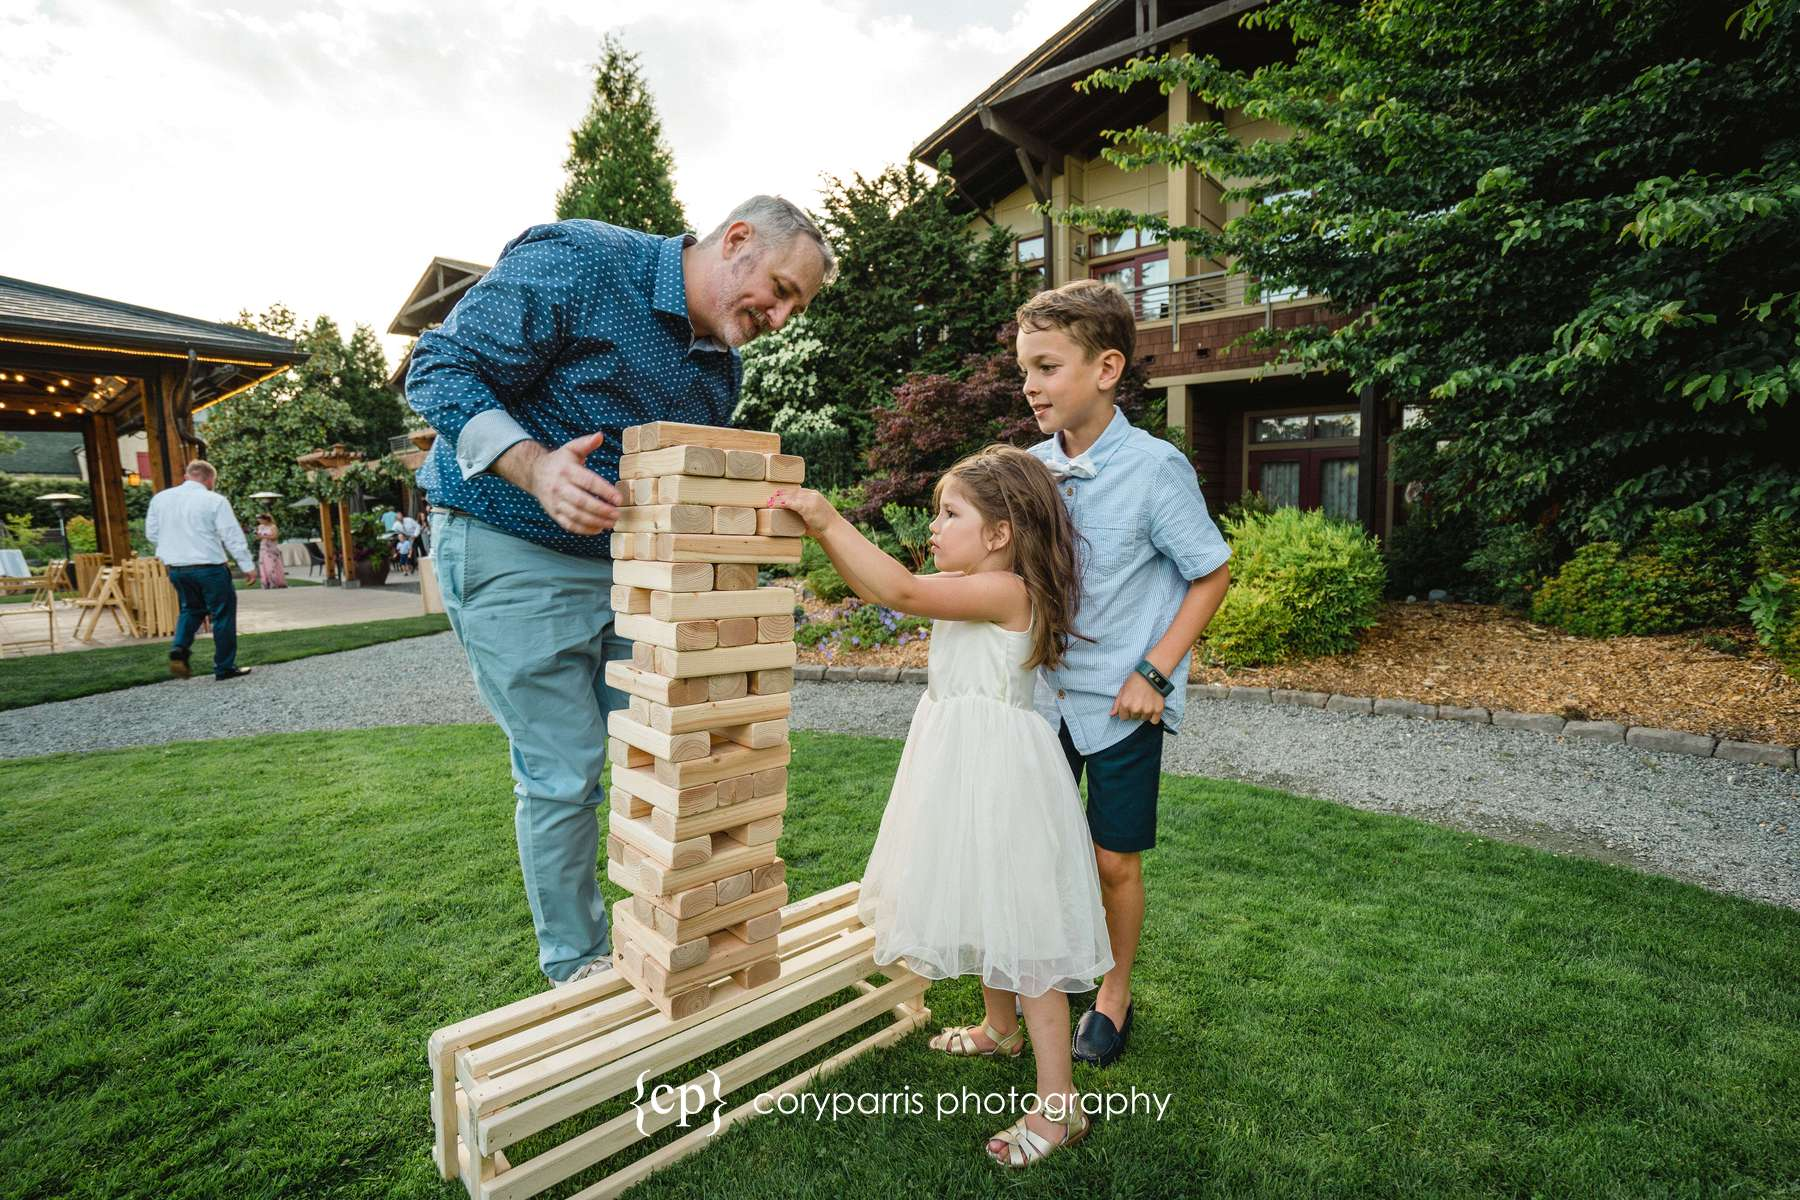 607-Willows-Lodge-Wedding-Photography-Woodinville.jpg